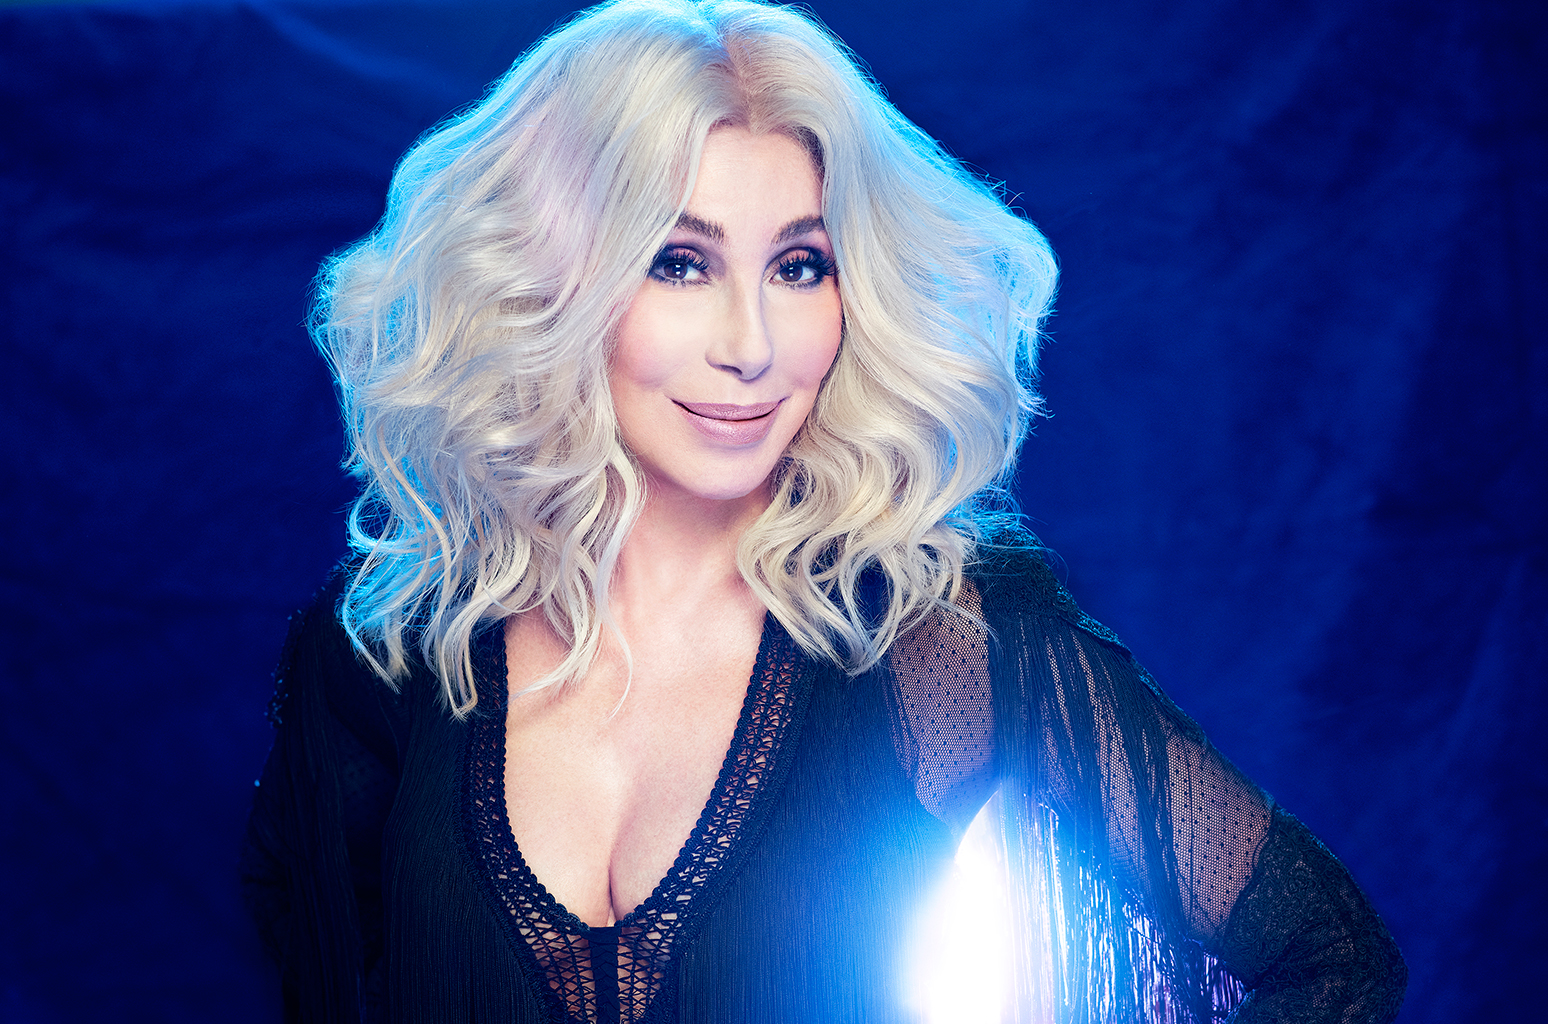 Cher Says Her Memoir Will Be 'Out in 2020' With 'Biopic to Follow